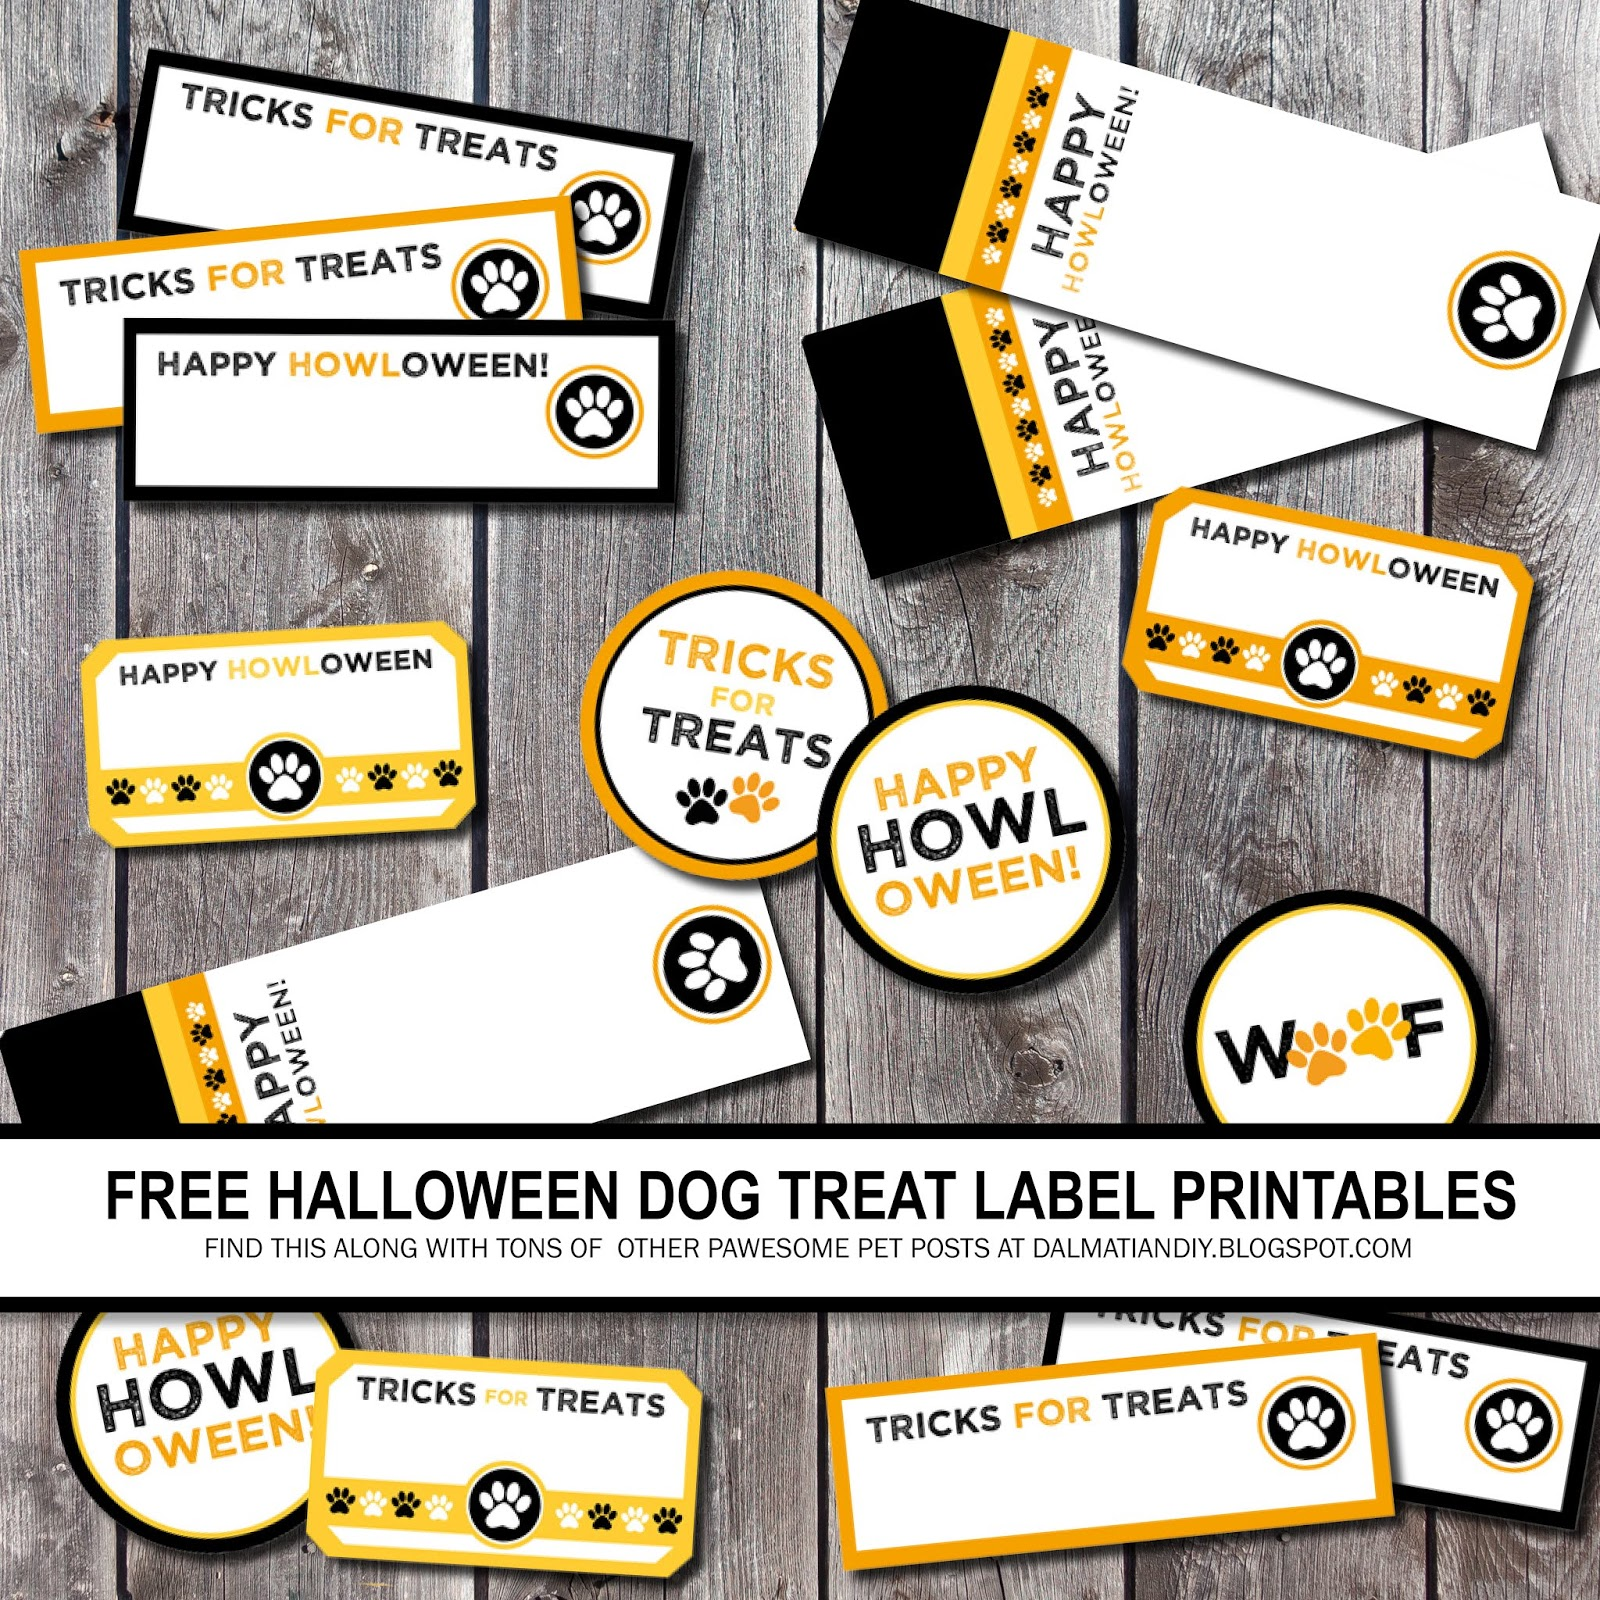 photograph about Free Printable Halloween Labels referred to as Free of charge Printable Halloween Doggy Tags + Practical Puppy Basic safety Recommendations